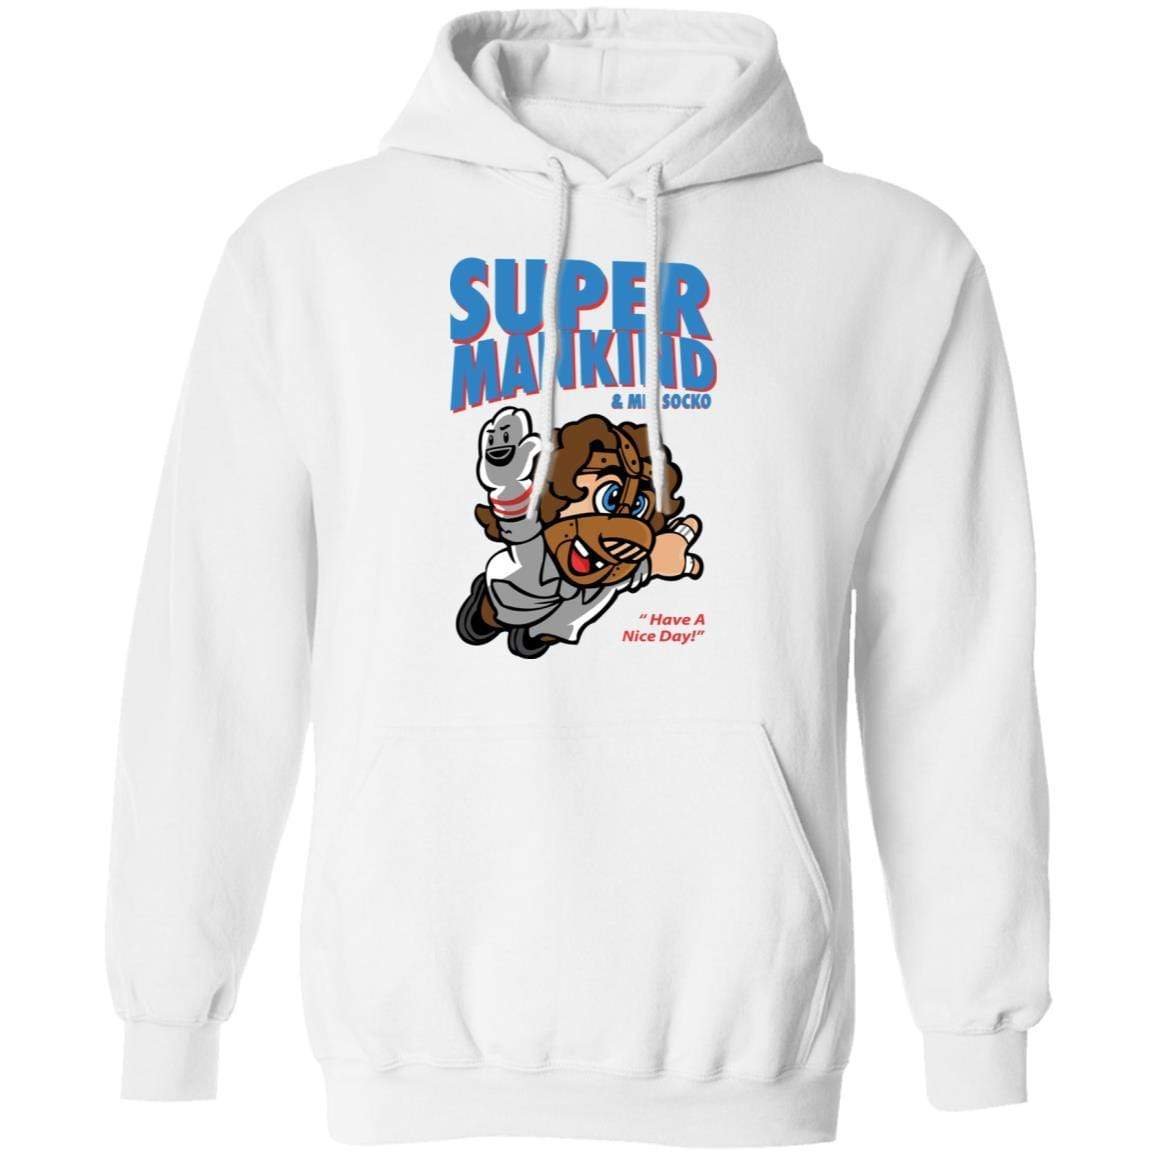 Super Mankind & Mr Socko Have A Nice Day T-Shirts, Hoodies 541-4744-91844581-23183 - Tee Ript